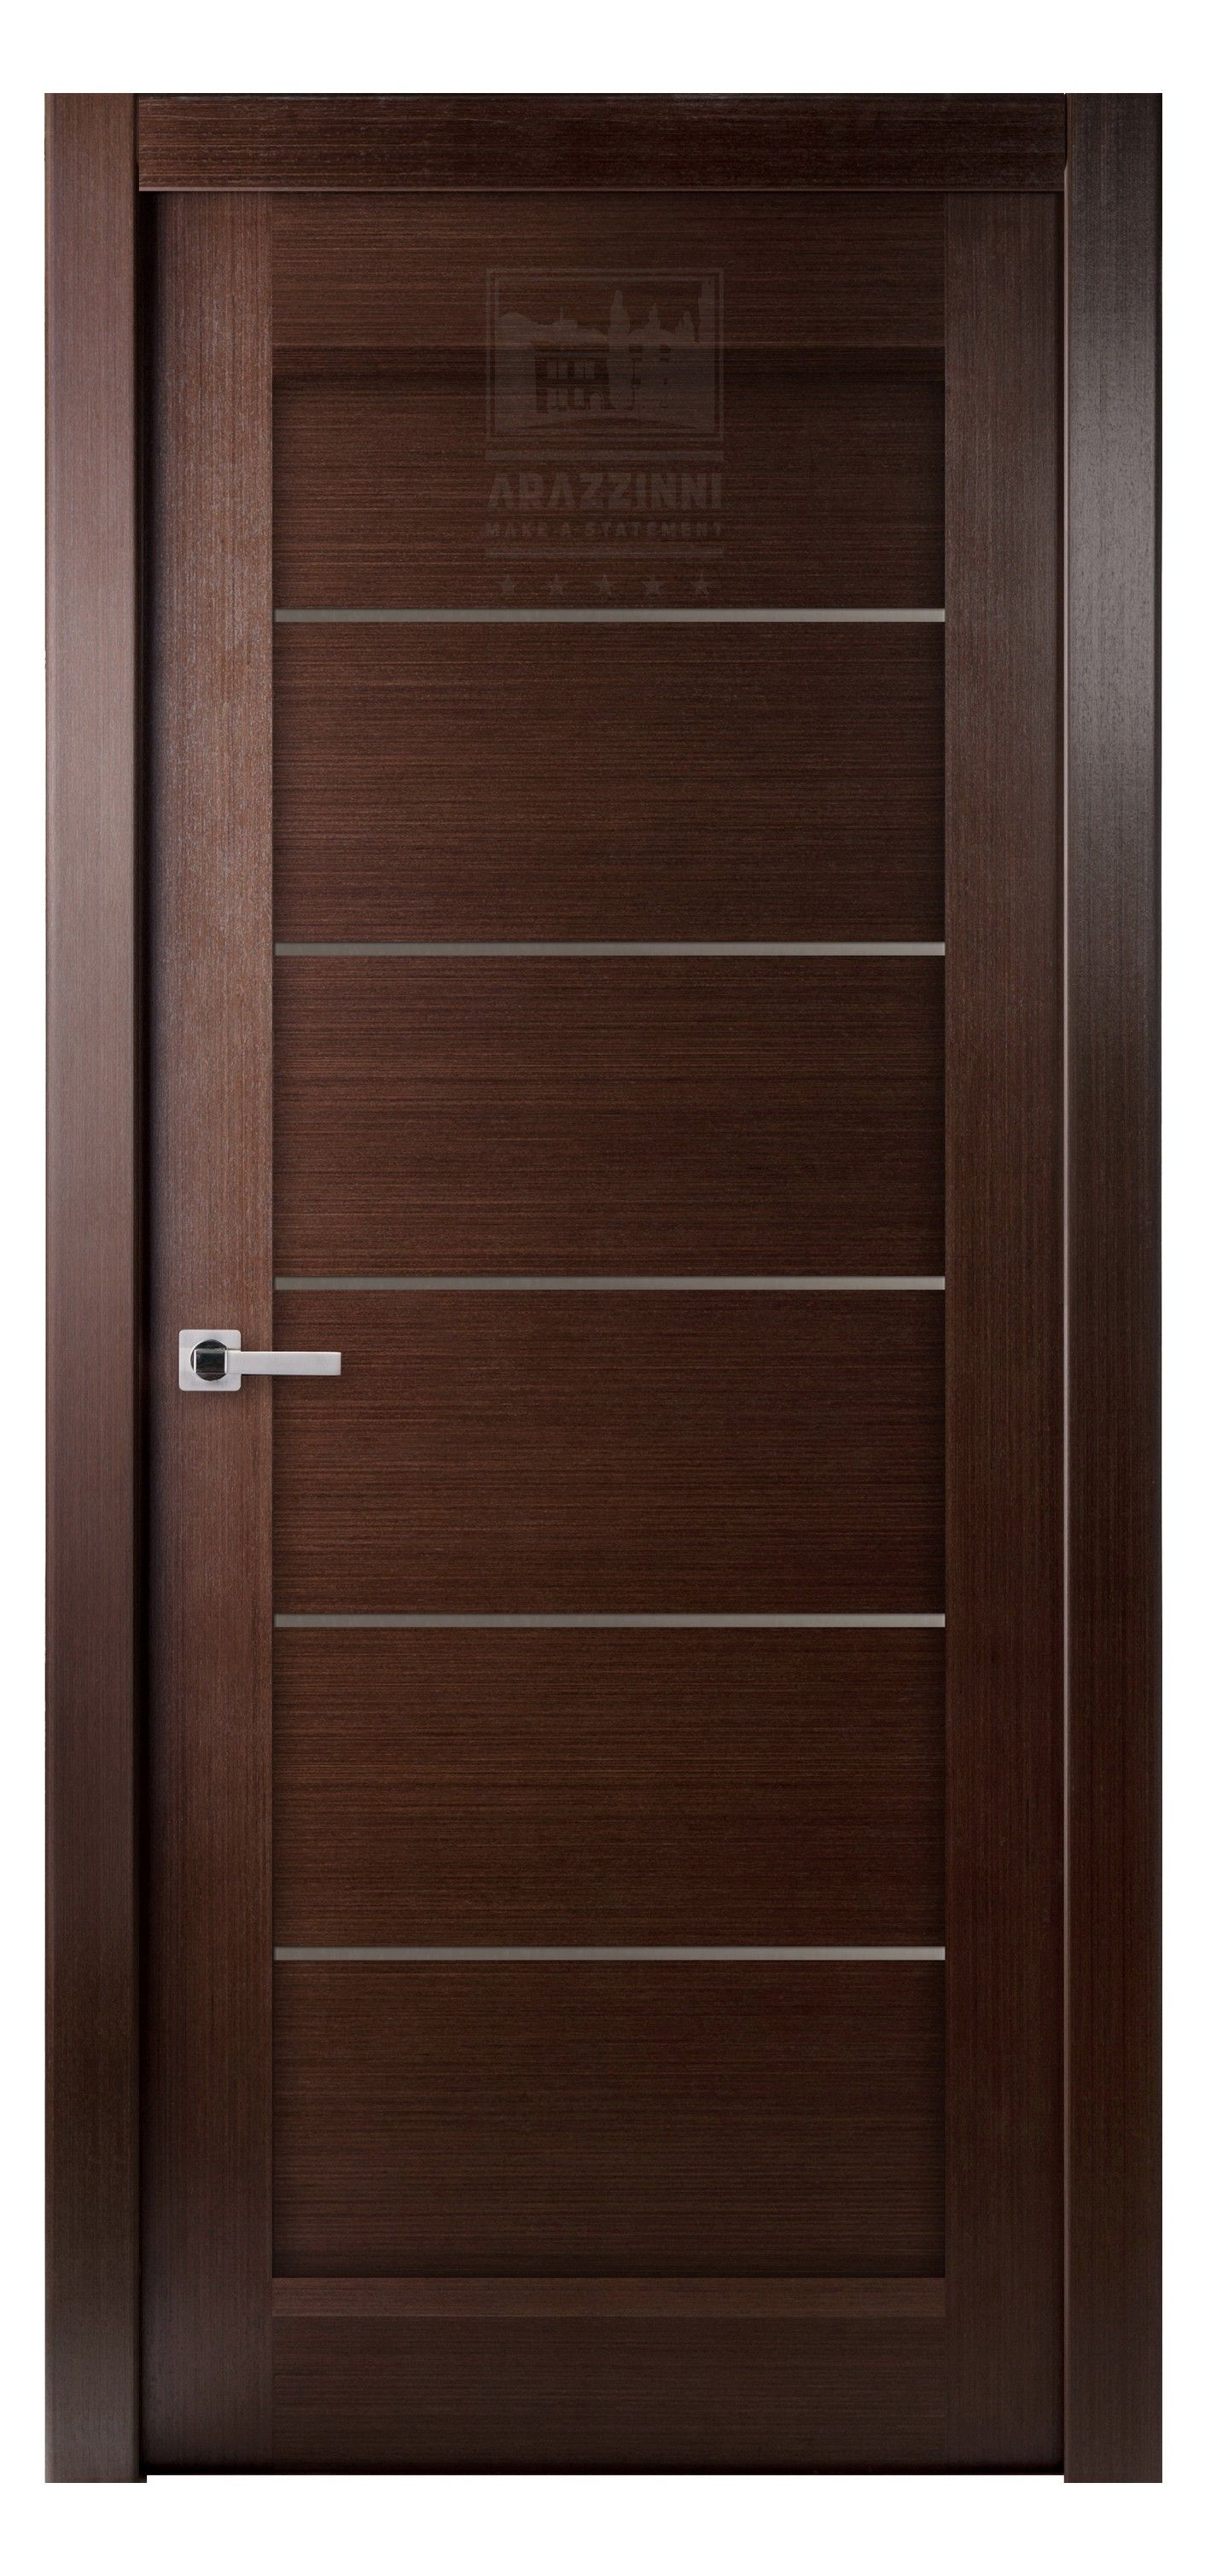 Arazzinni Mirella Interior Door Wenge Bedroom Door Design Doors Interior Modern Doors Interior